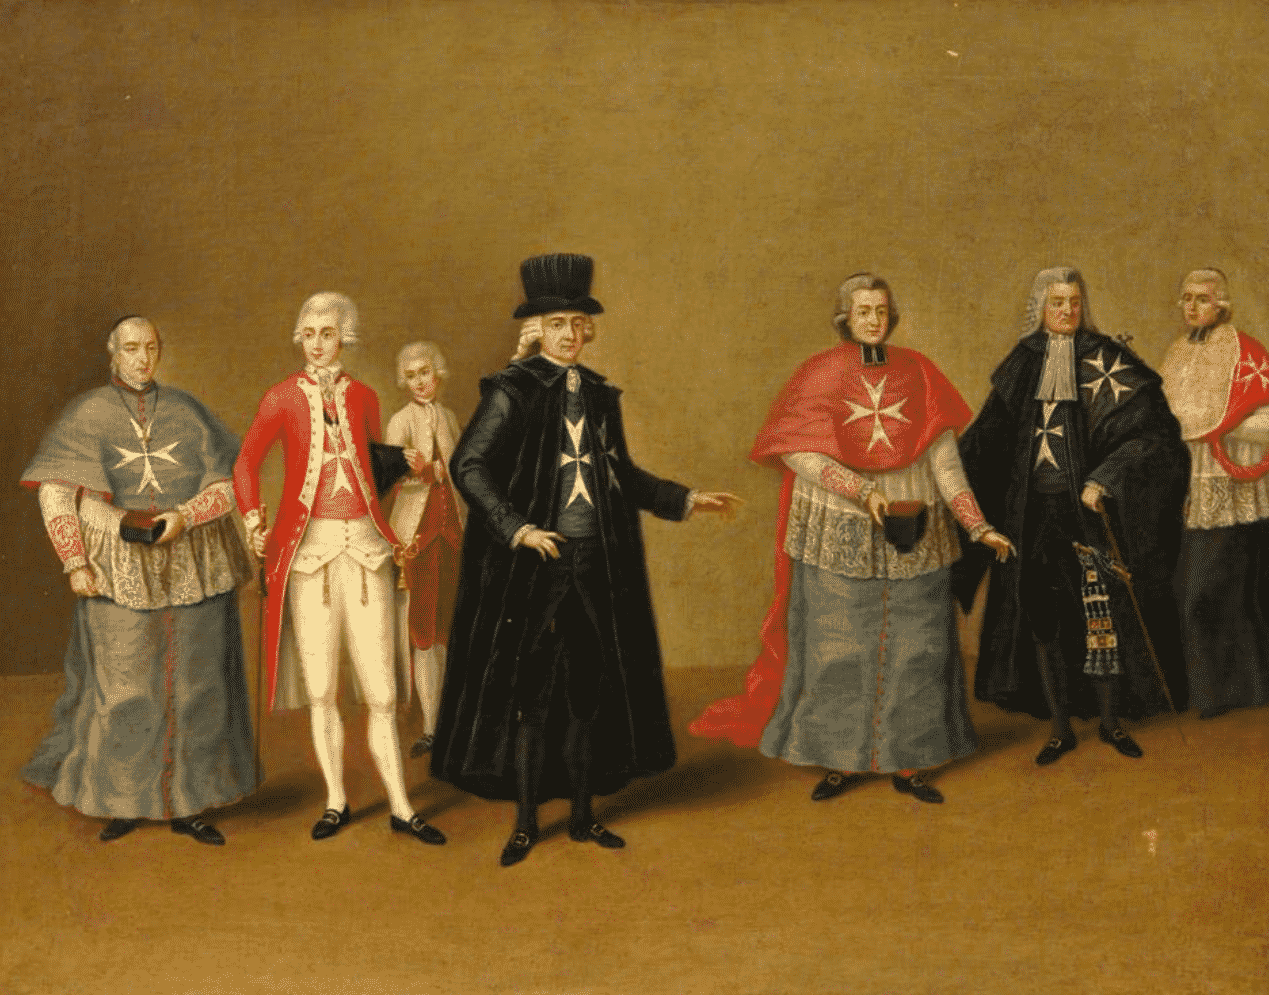 Painting of the Knights of Malta with Maltese Cross